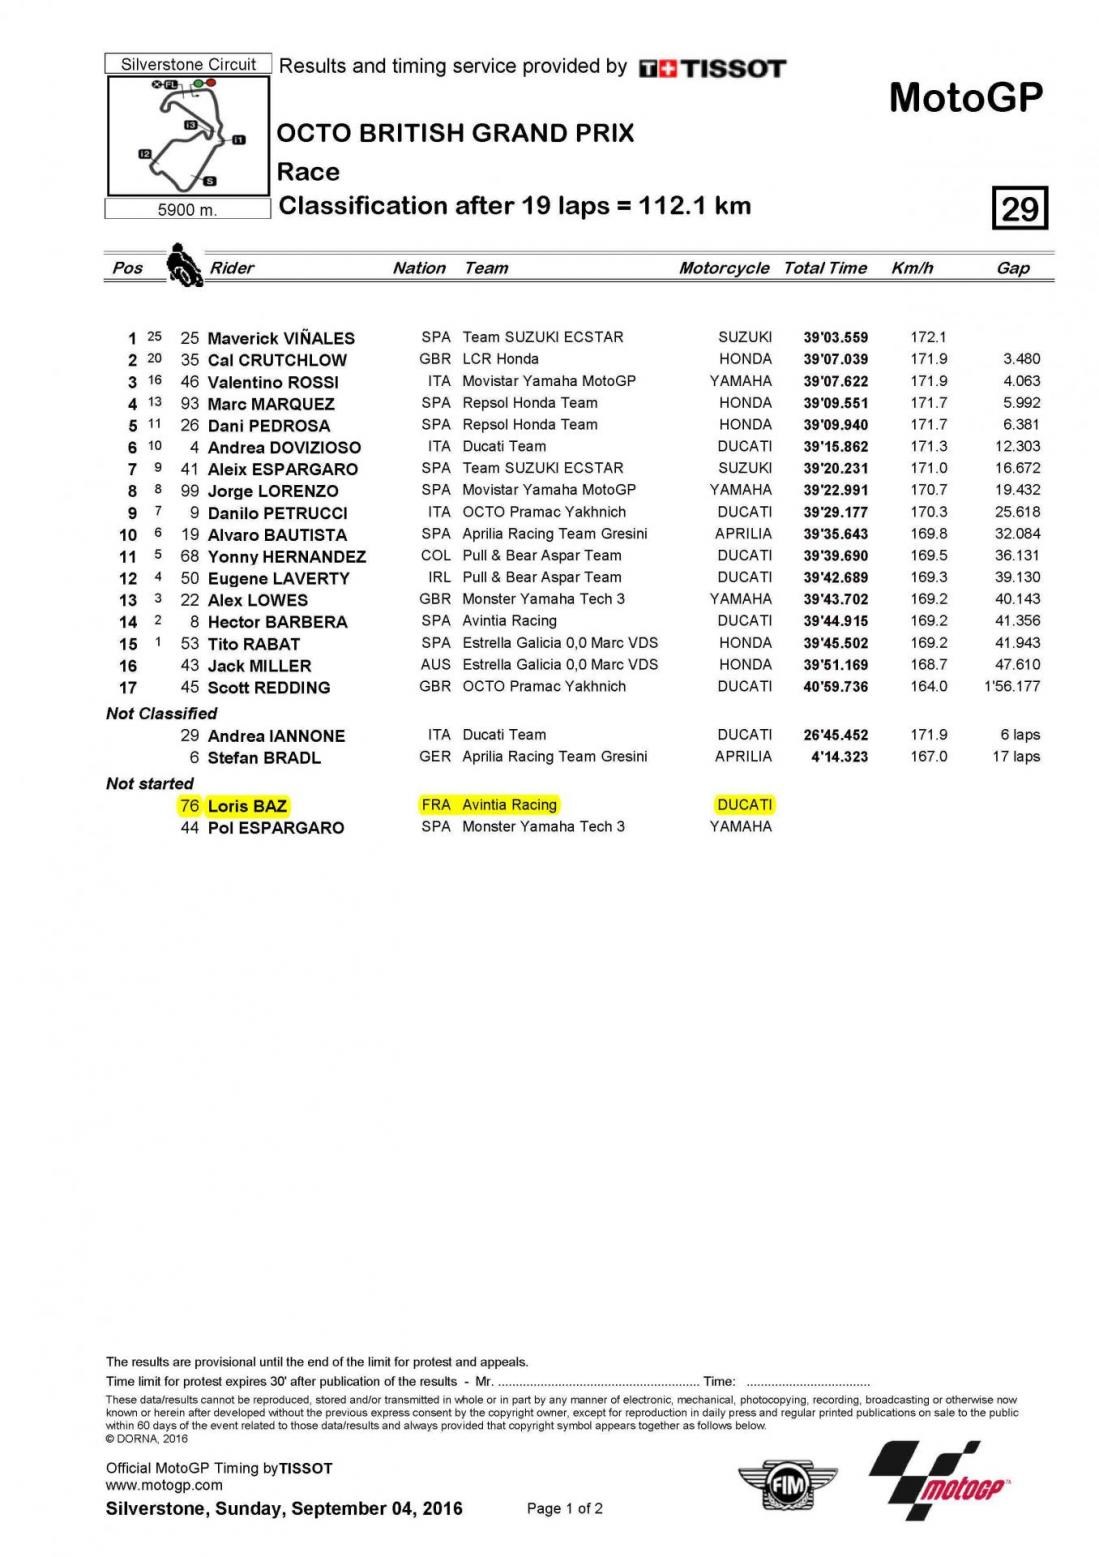 Gp gb course page 1